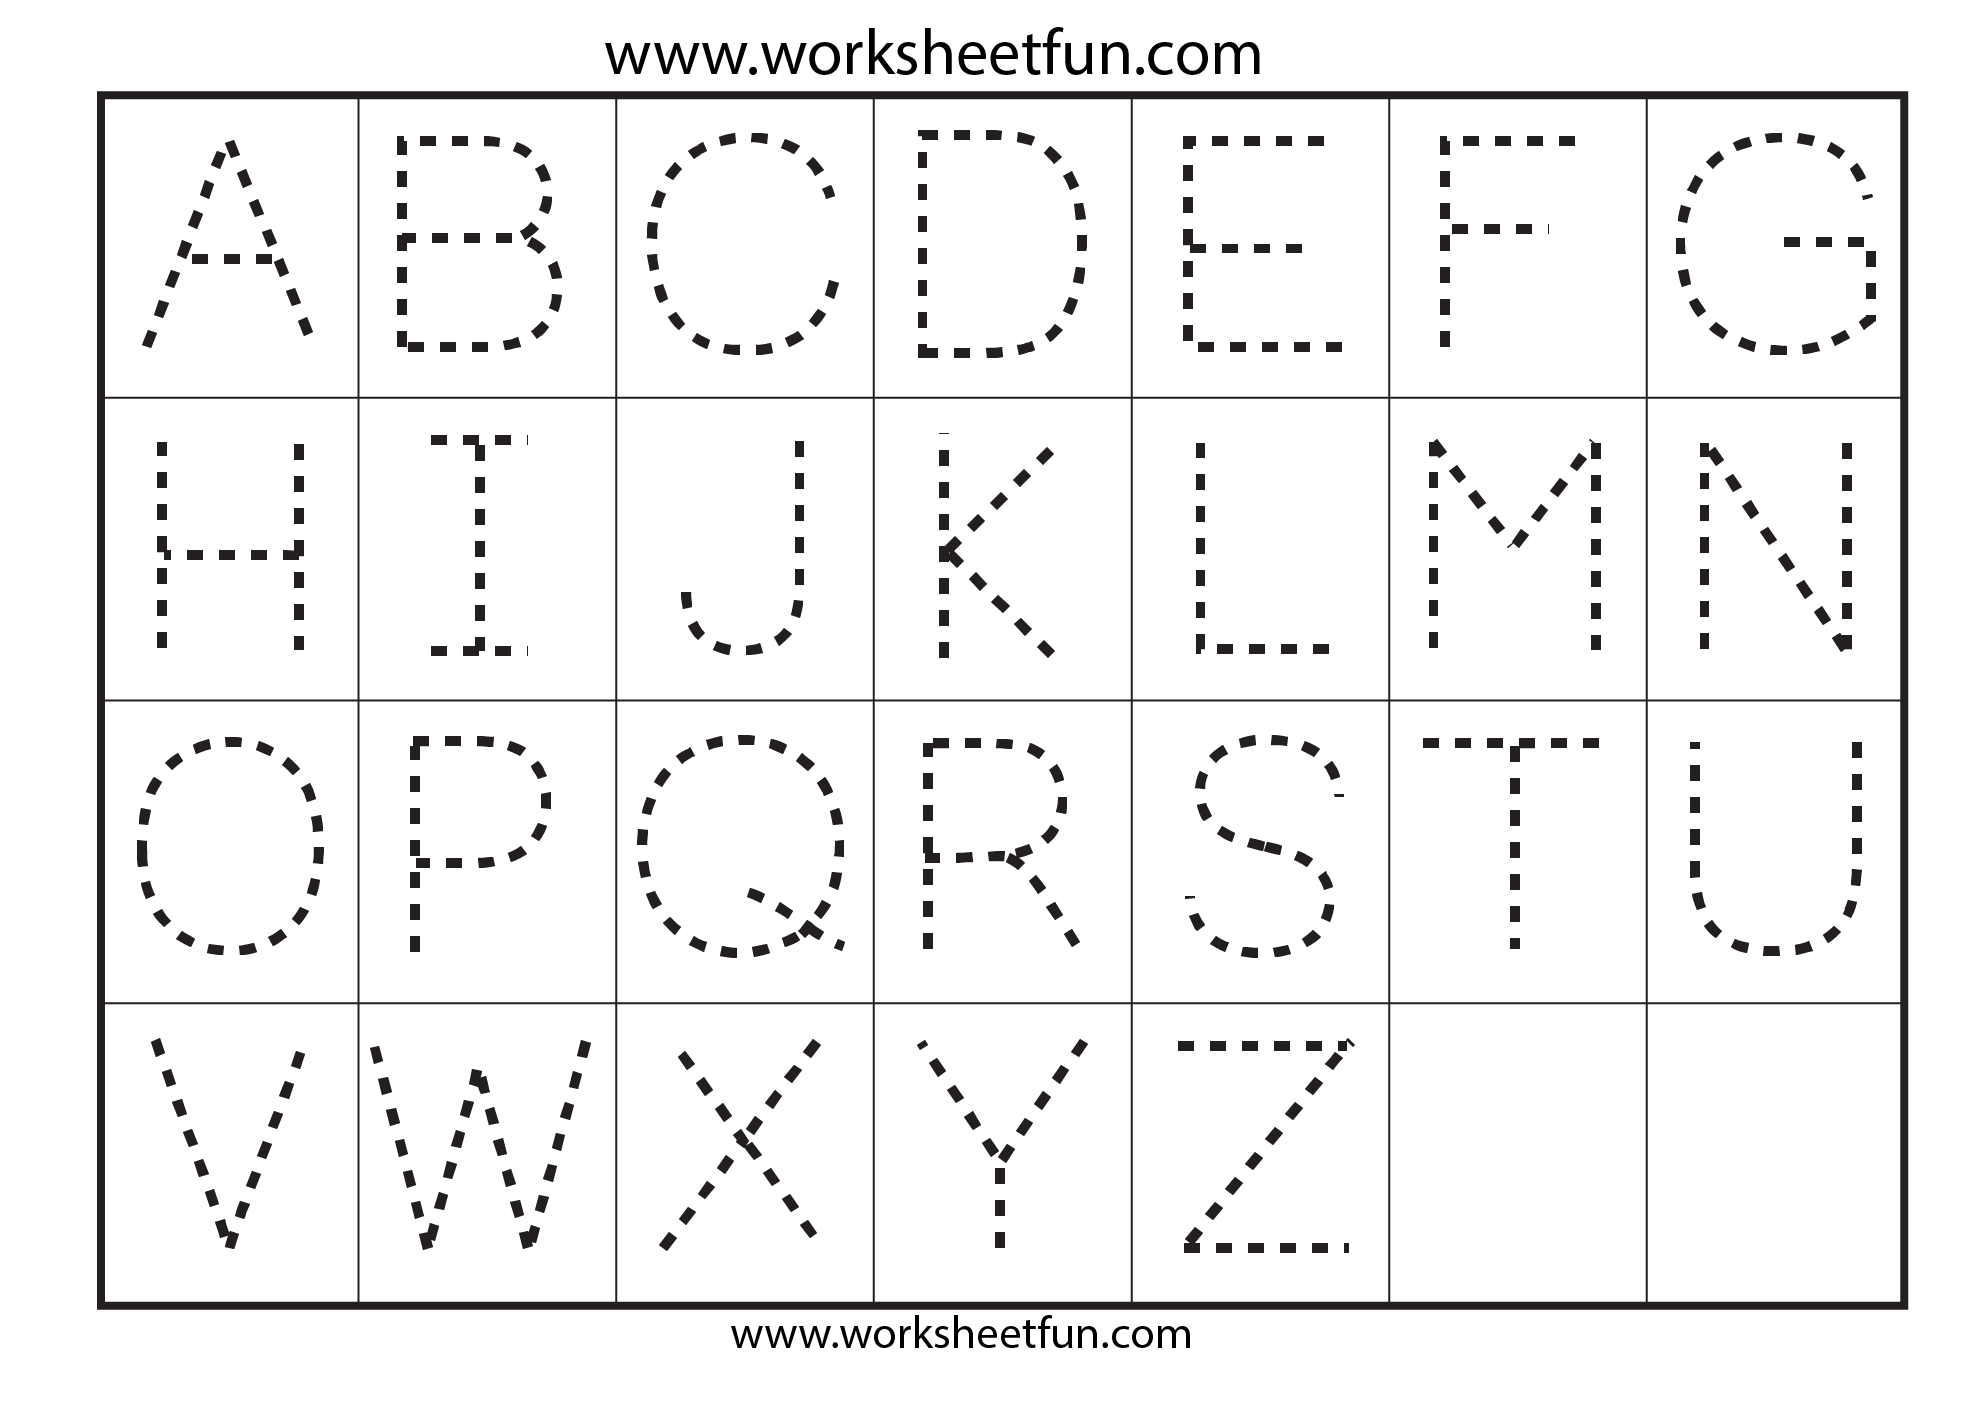 Printables Abc Tracing Worksheets For Kindergarten abc trace worksheets intrepidpath 7 best images of printable tracing alphabet